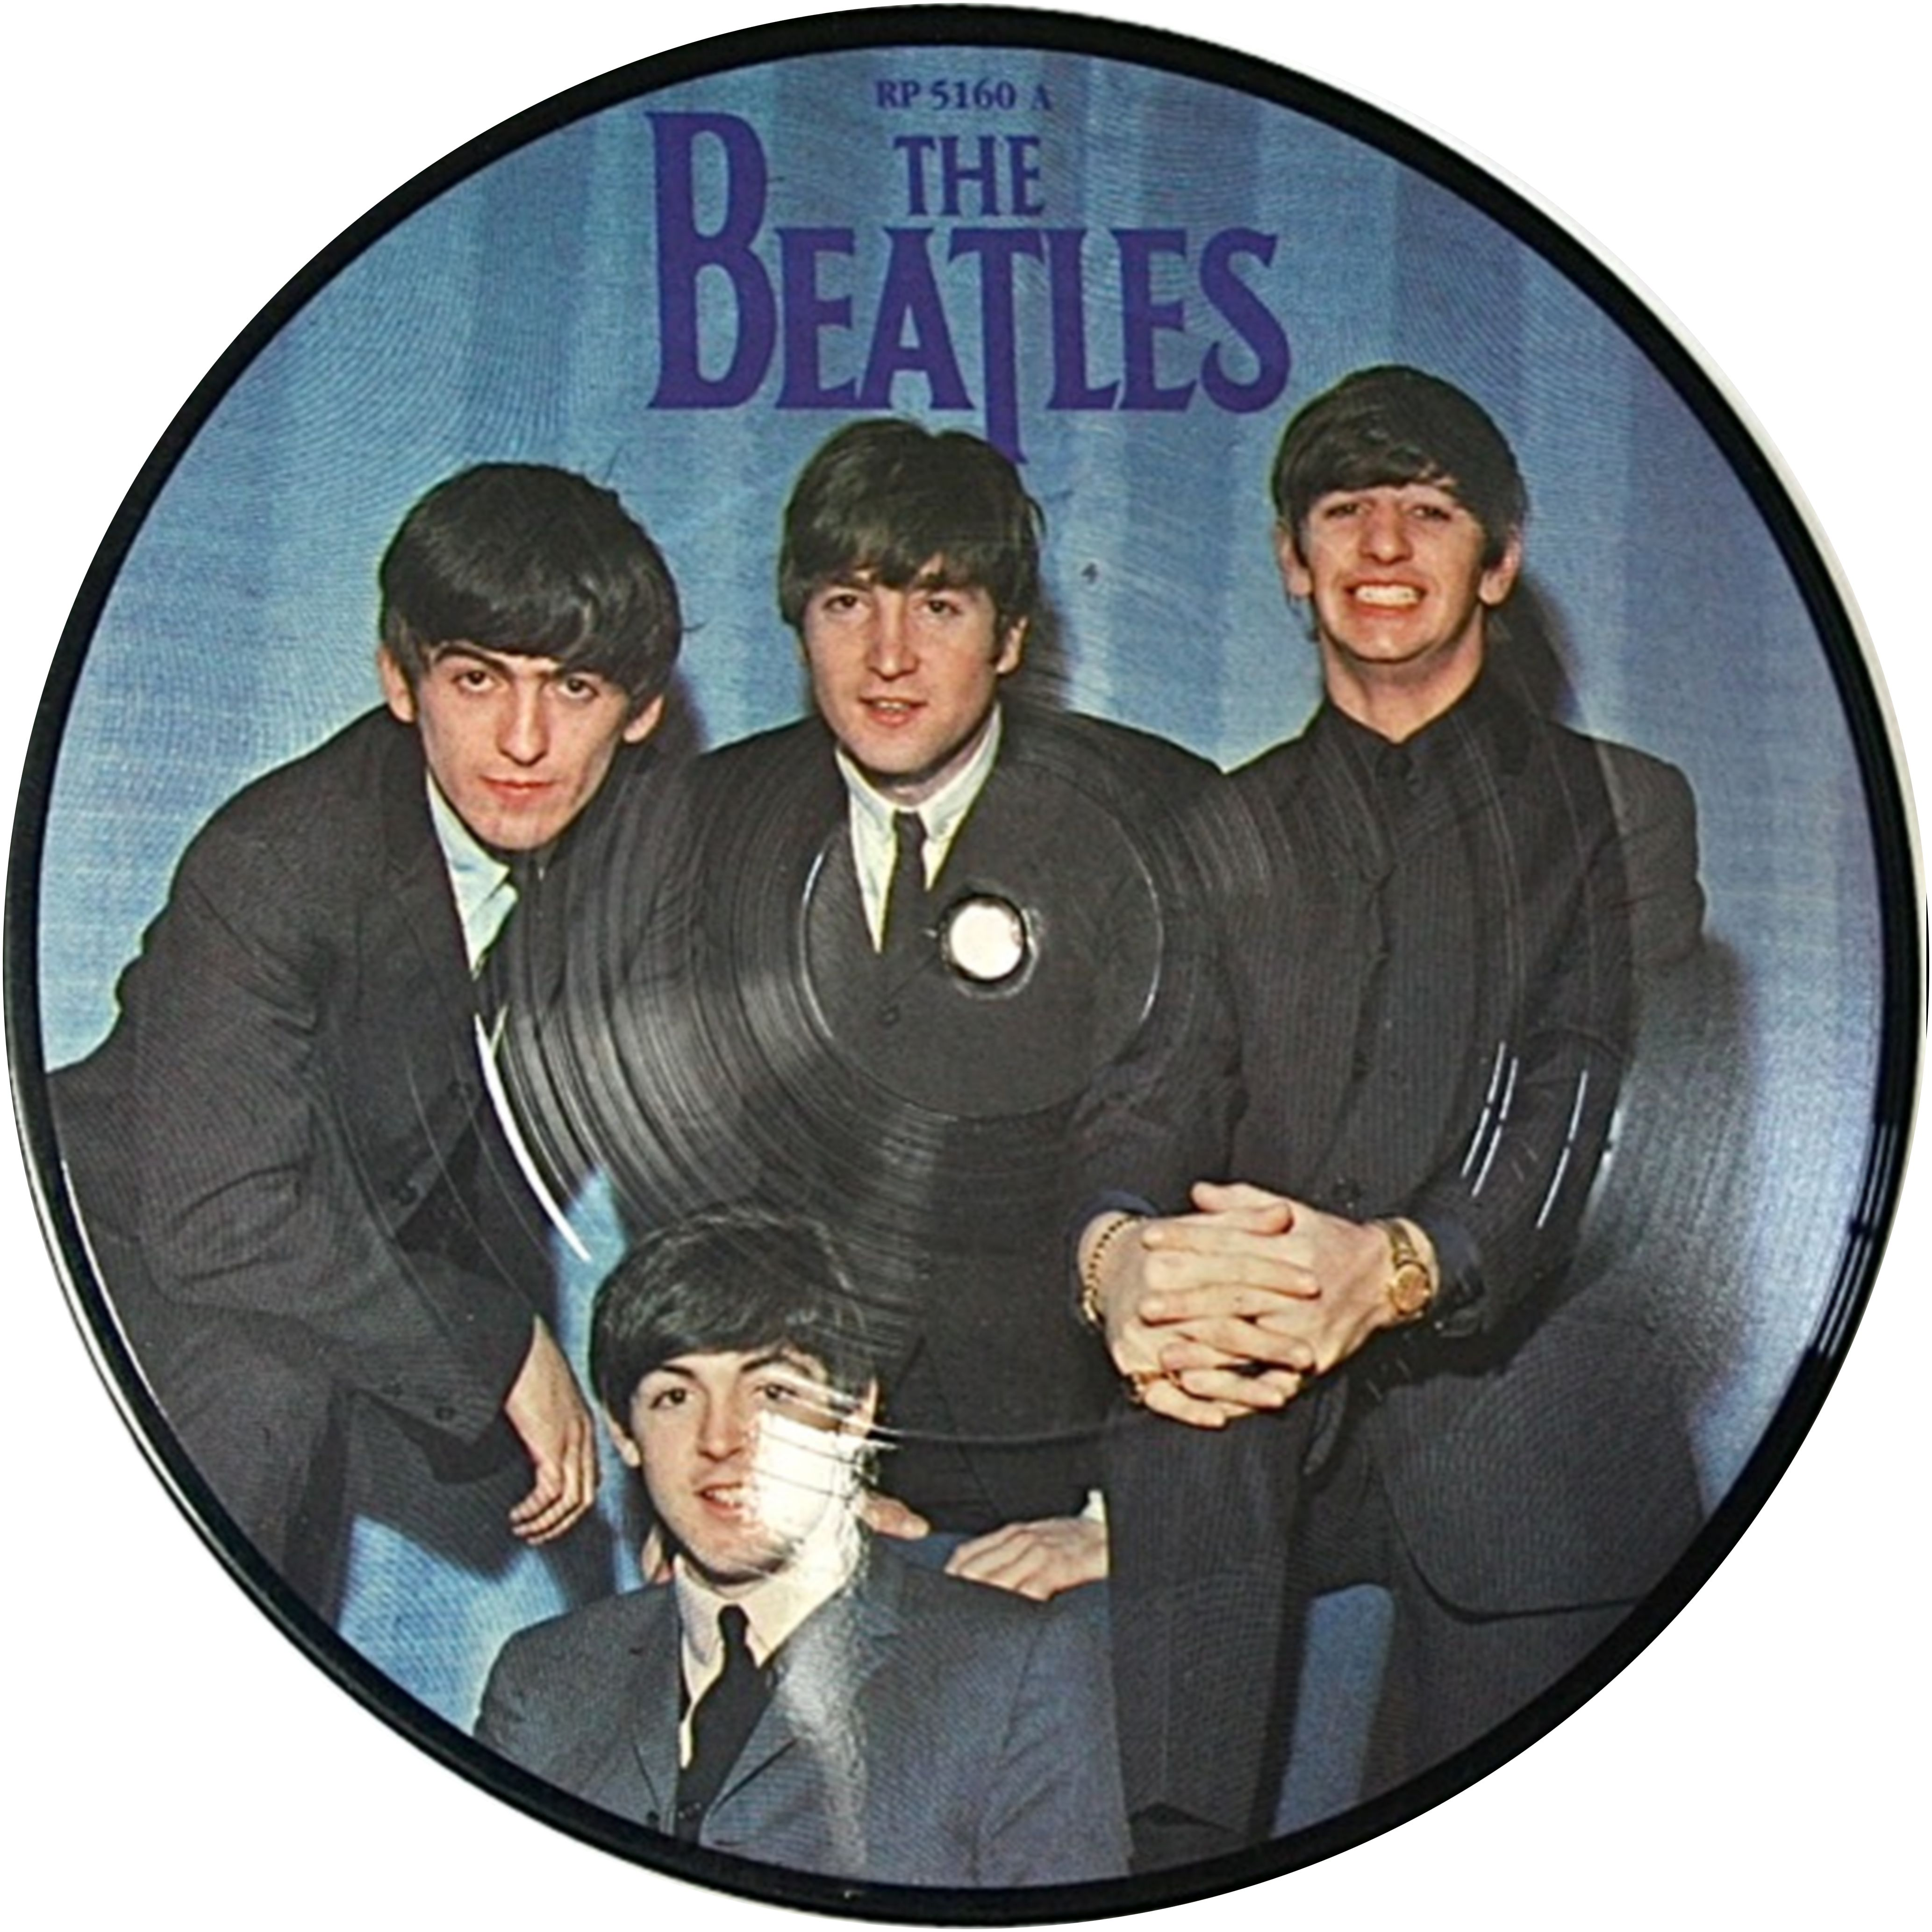 Pin von Ralph Reyher auf Beatles for ever